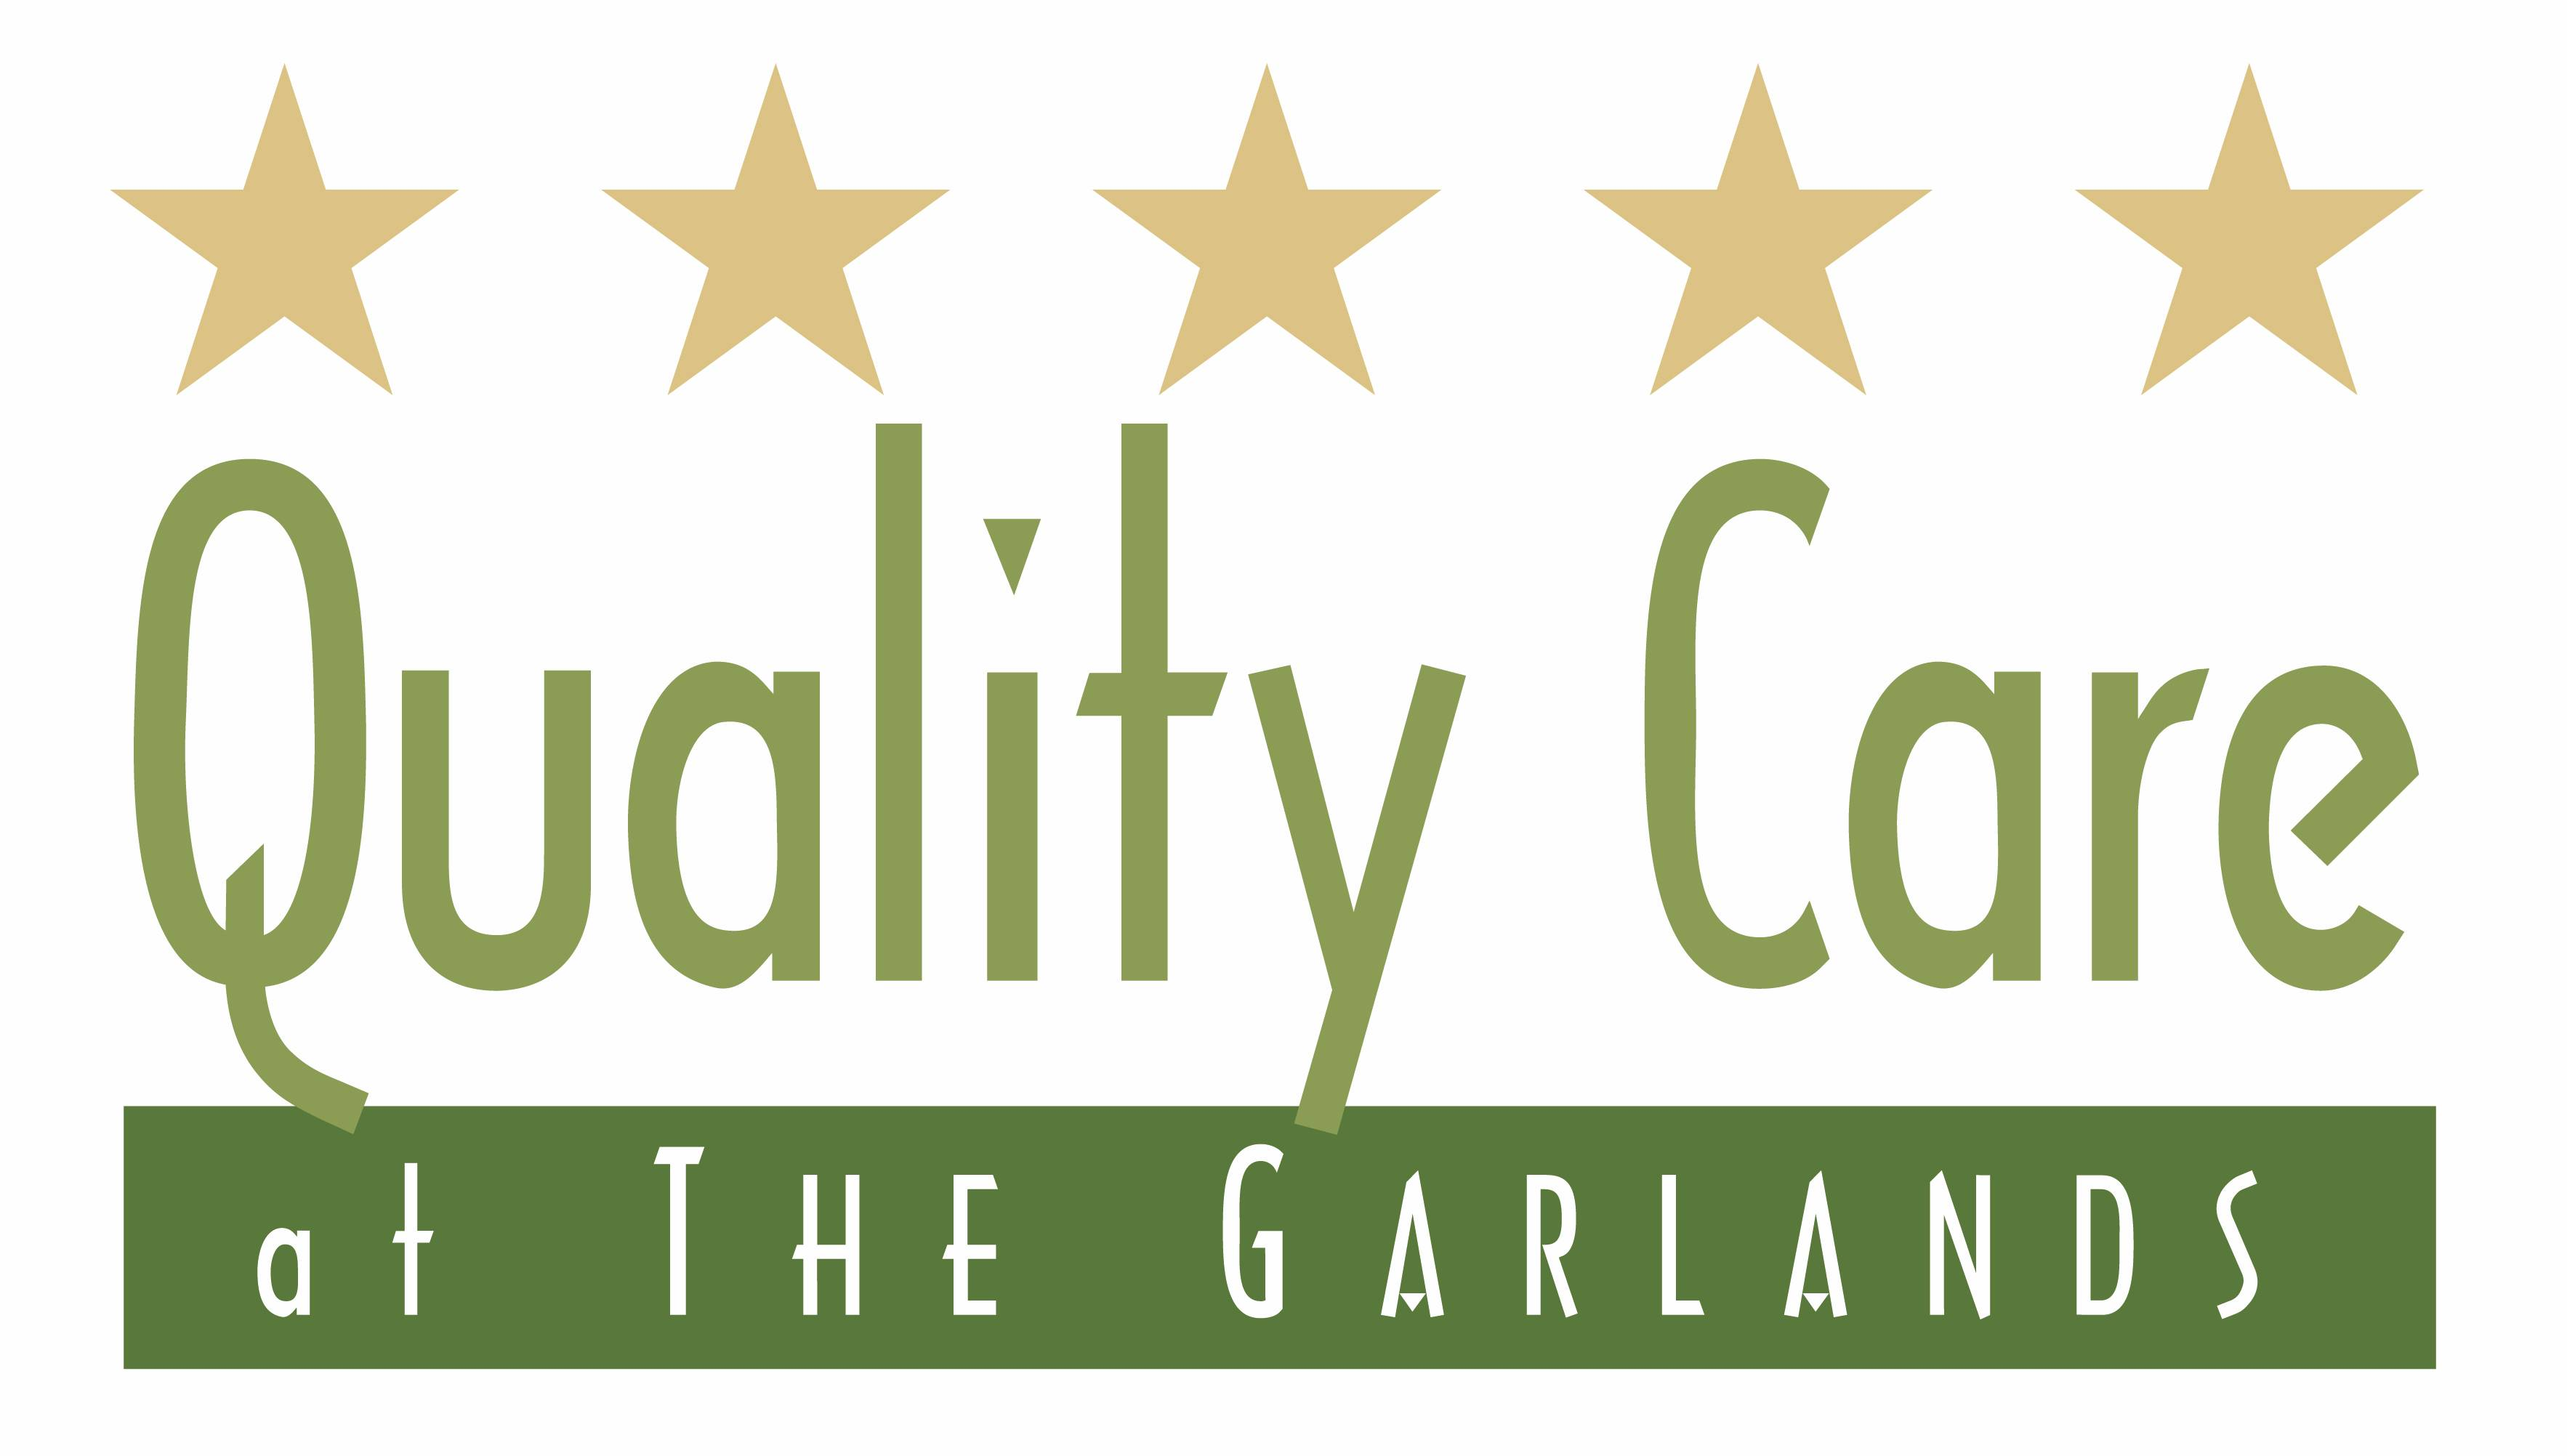 Prairieview at The Garlands achieved a perfect overall 5-star rating for the third year in a row from the federal government's Center for Medicare Services (CMS) for quality. graphic